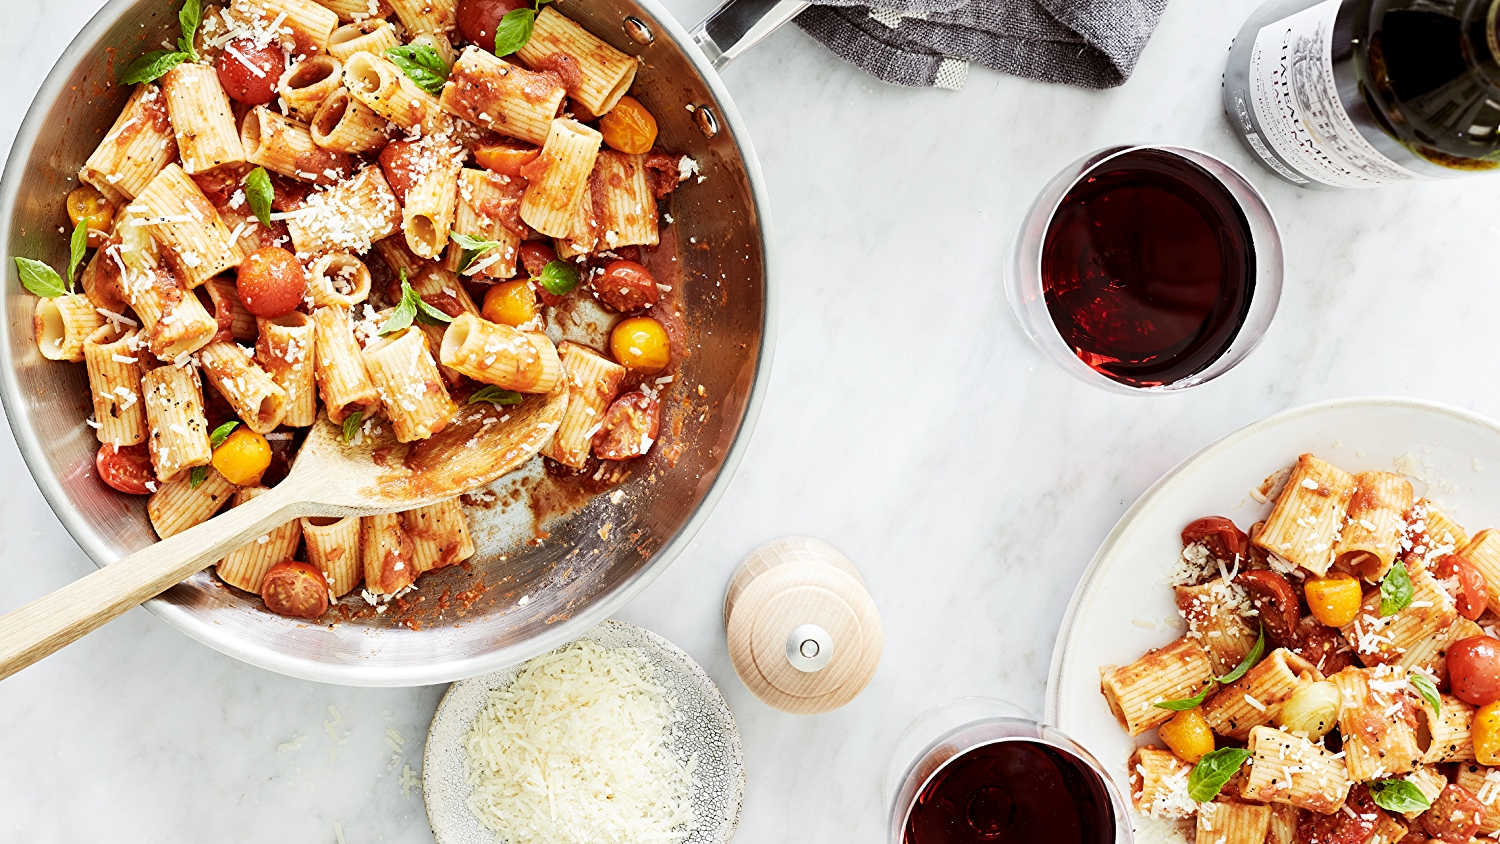 Image of pasta on a dinner table with wine